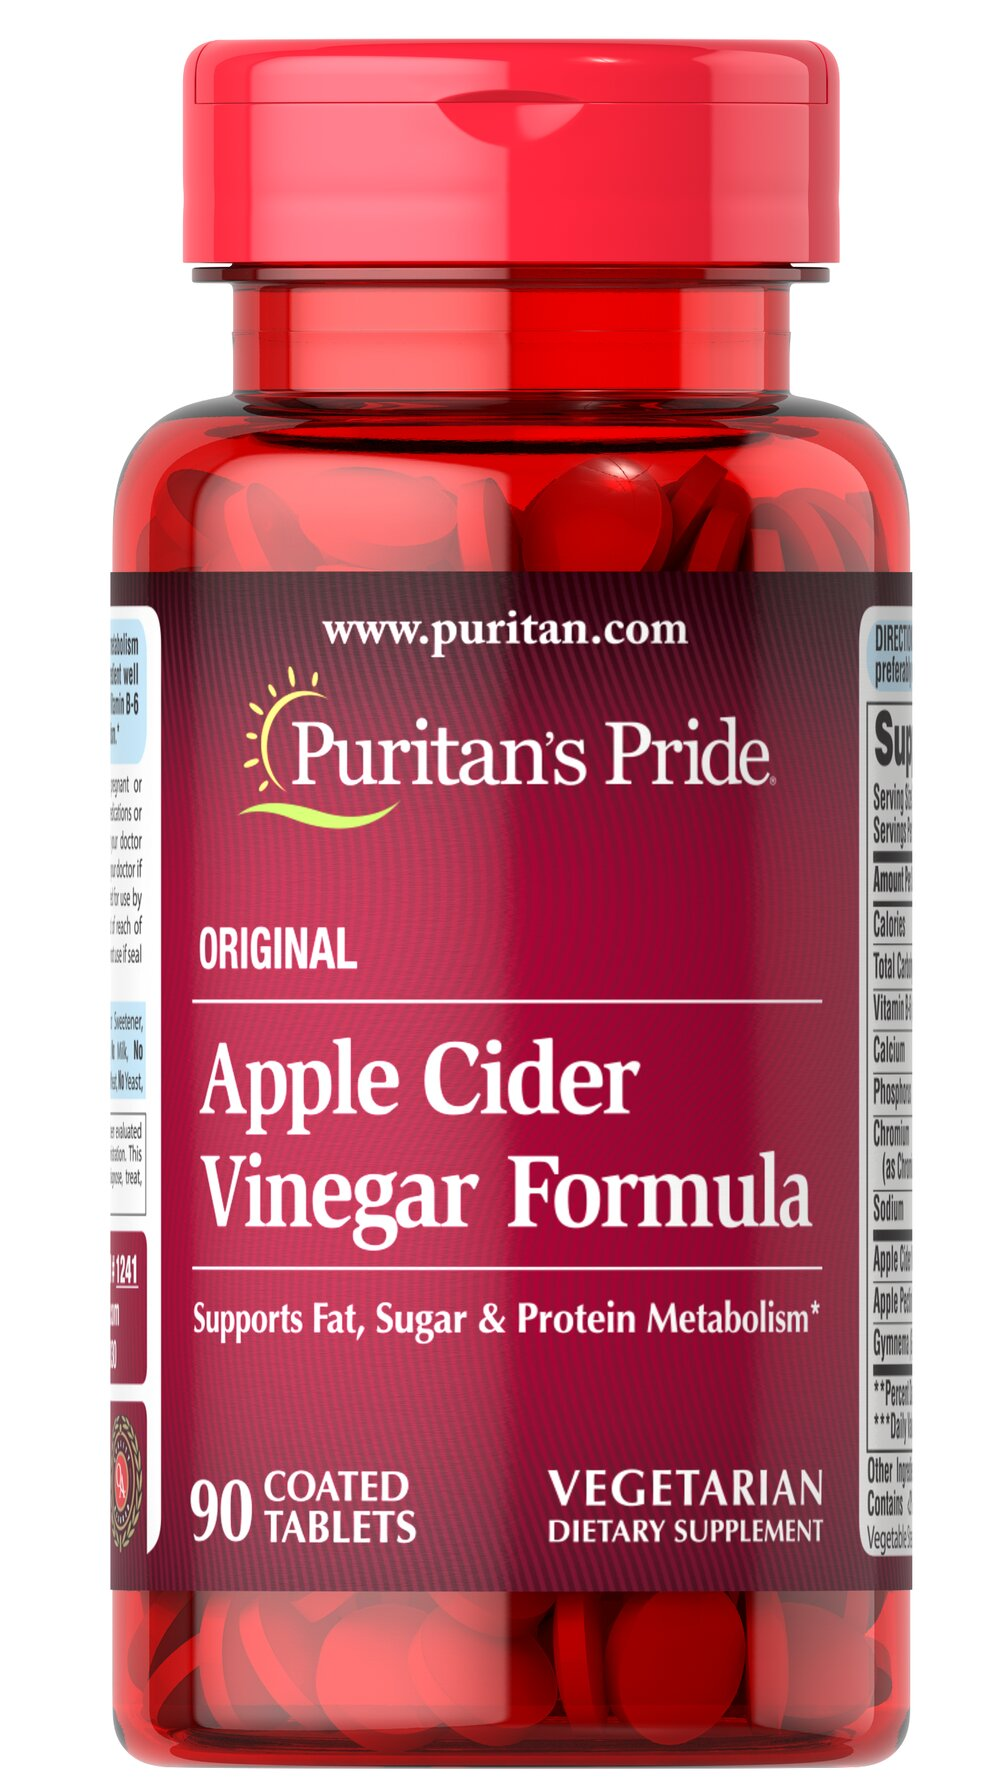 Apple Cider Vinegar Formula <p>Chances are, your mother and grandmother used Apple Cider Vinegar for a variety of purposes. As a supplement, Apple Cider Vinegar tablets are popular with fitness enthusiasts and those following healthy eating plans.</p> 90 Tablets  $12.29